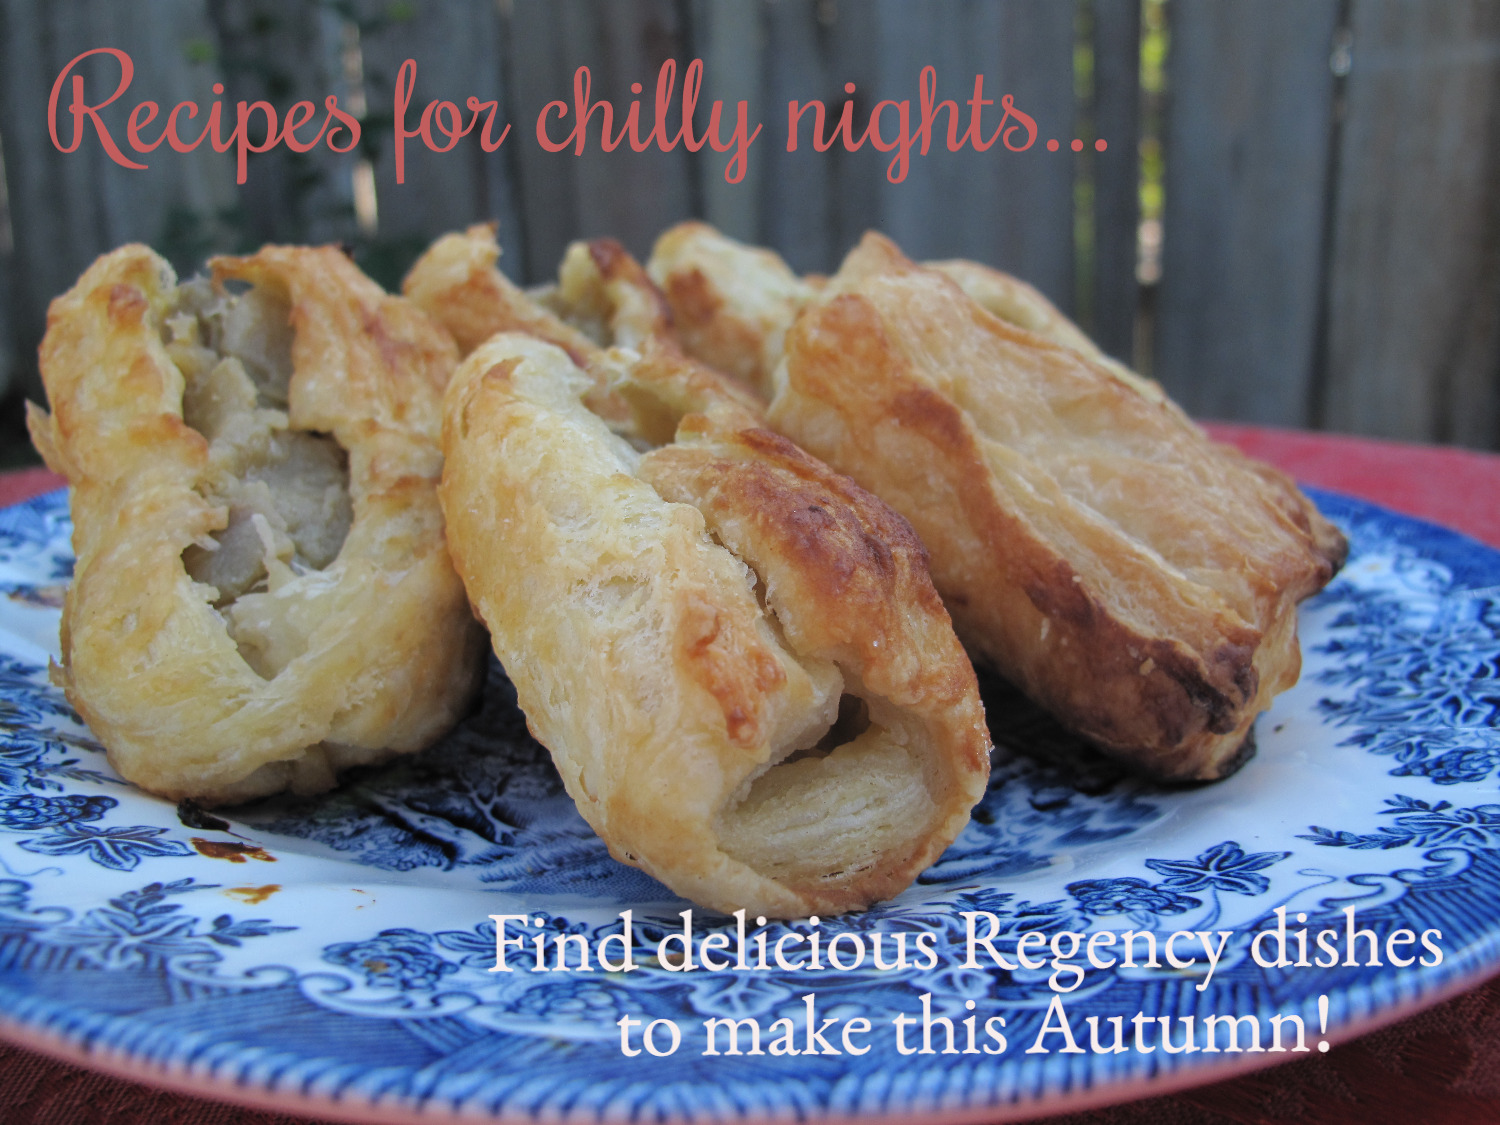 Autumn Regency Recipes